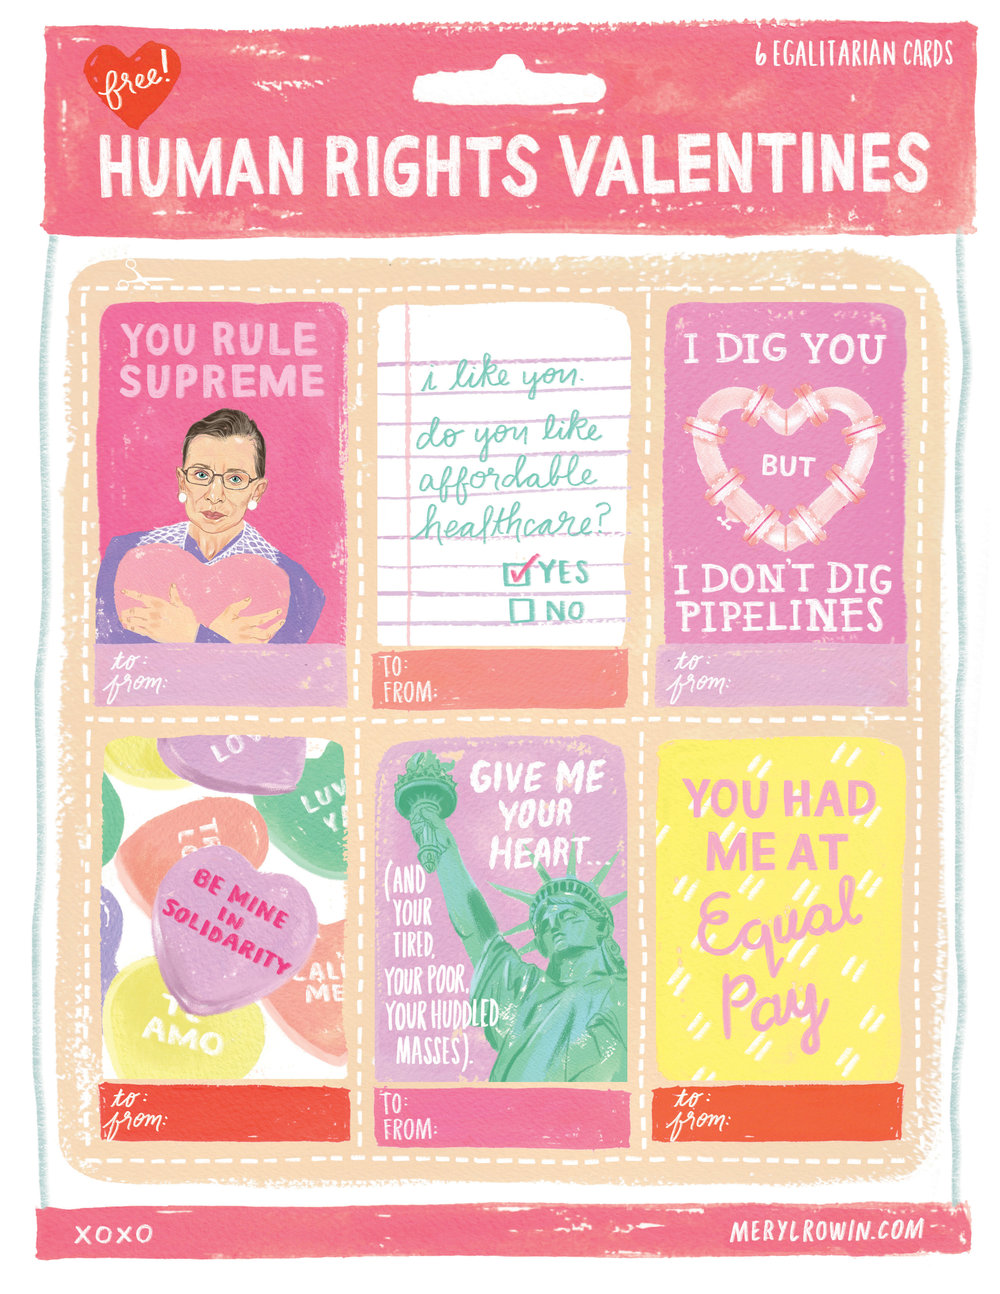 HUMAN RIGHTS VALENTINES_LENNY LETTER_RGB.jpg